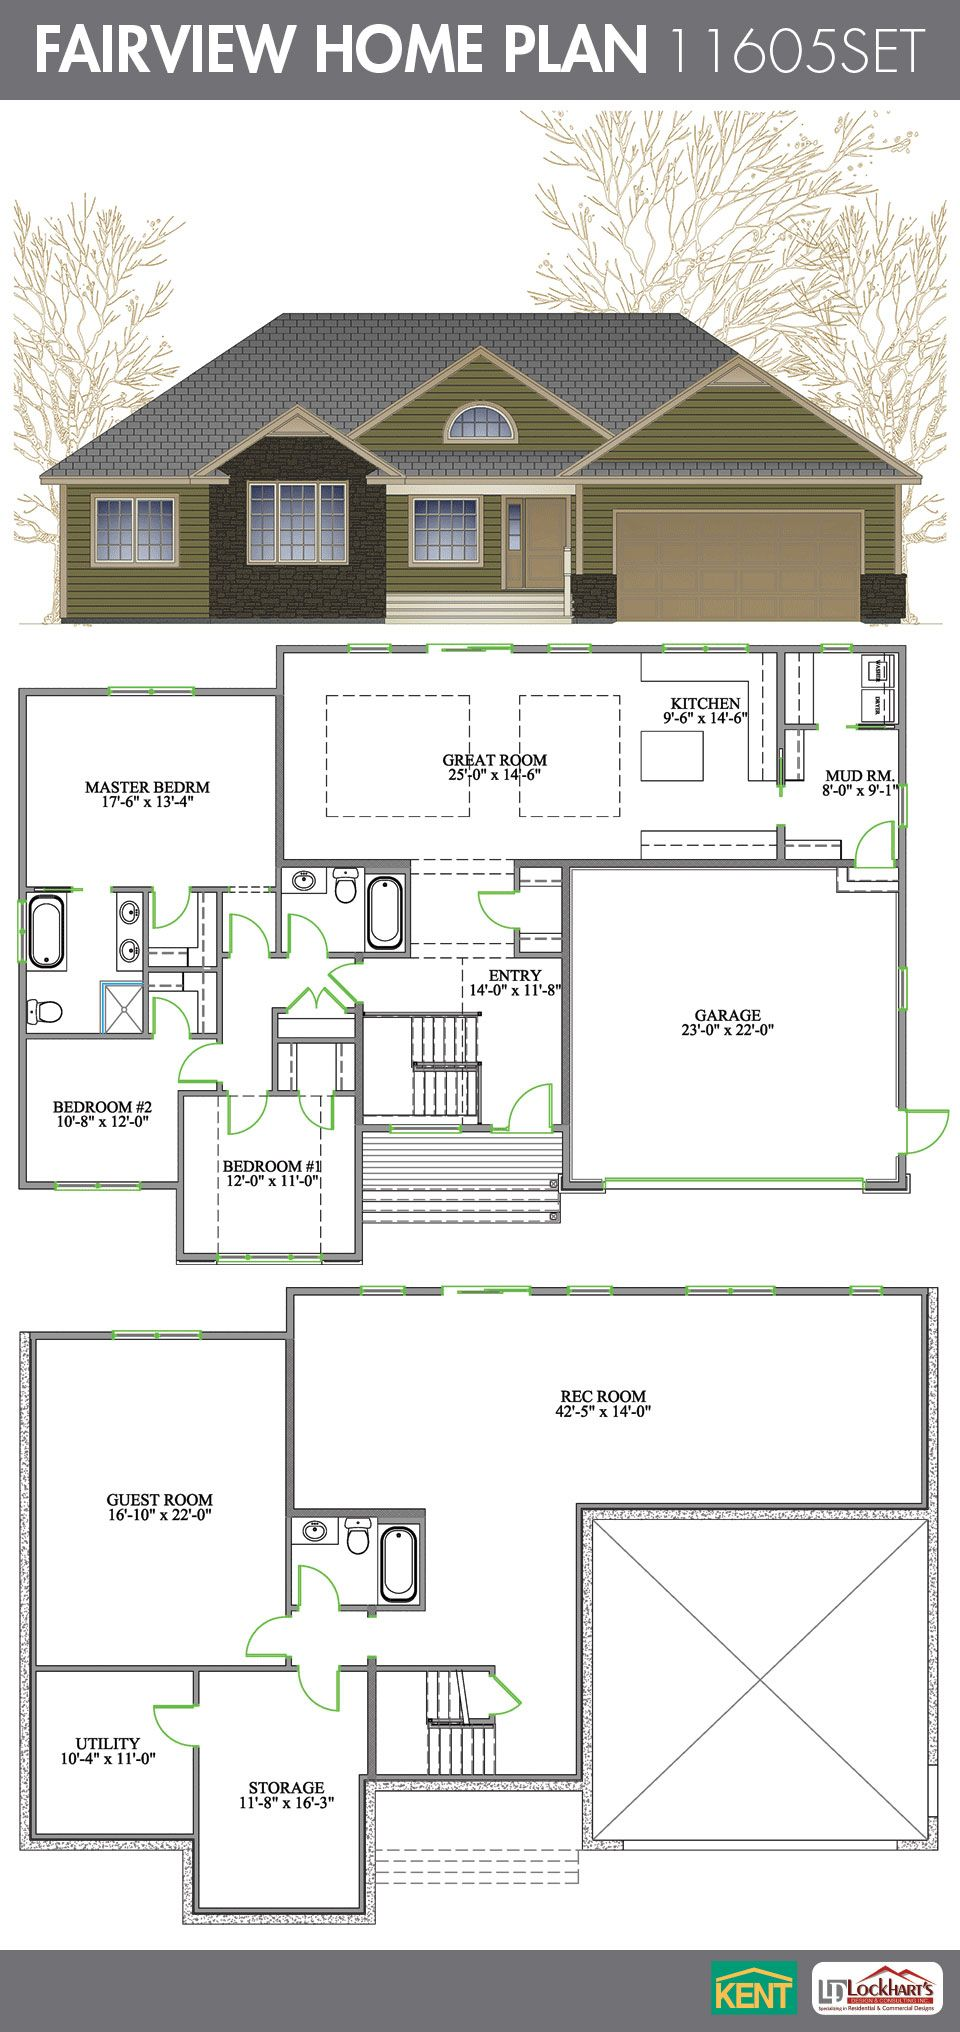 Fairview Home Plan House Plans Open Concept Great Room